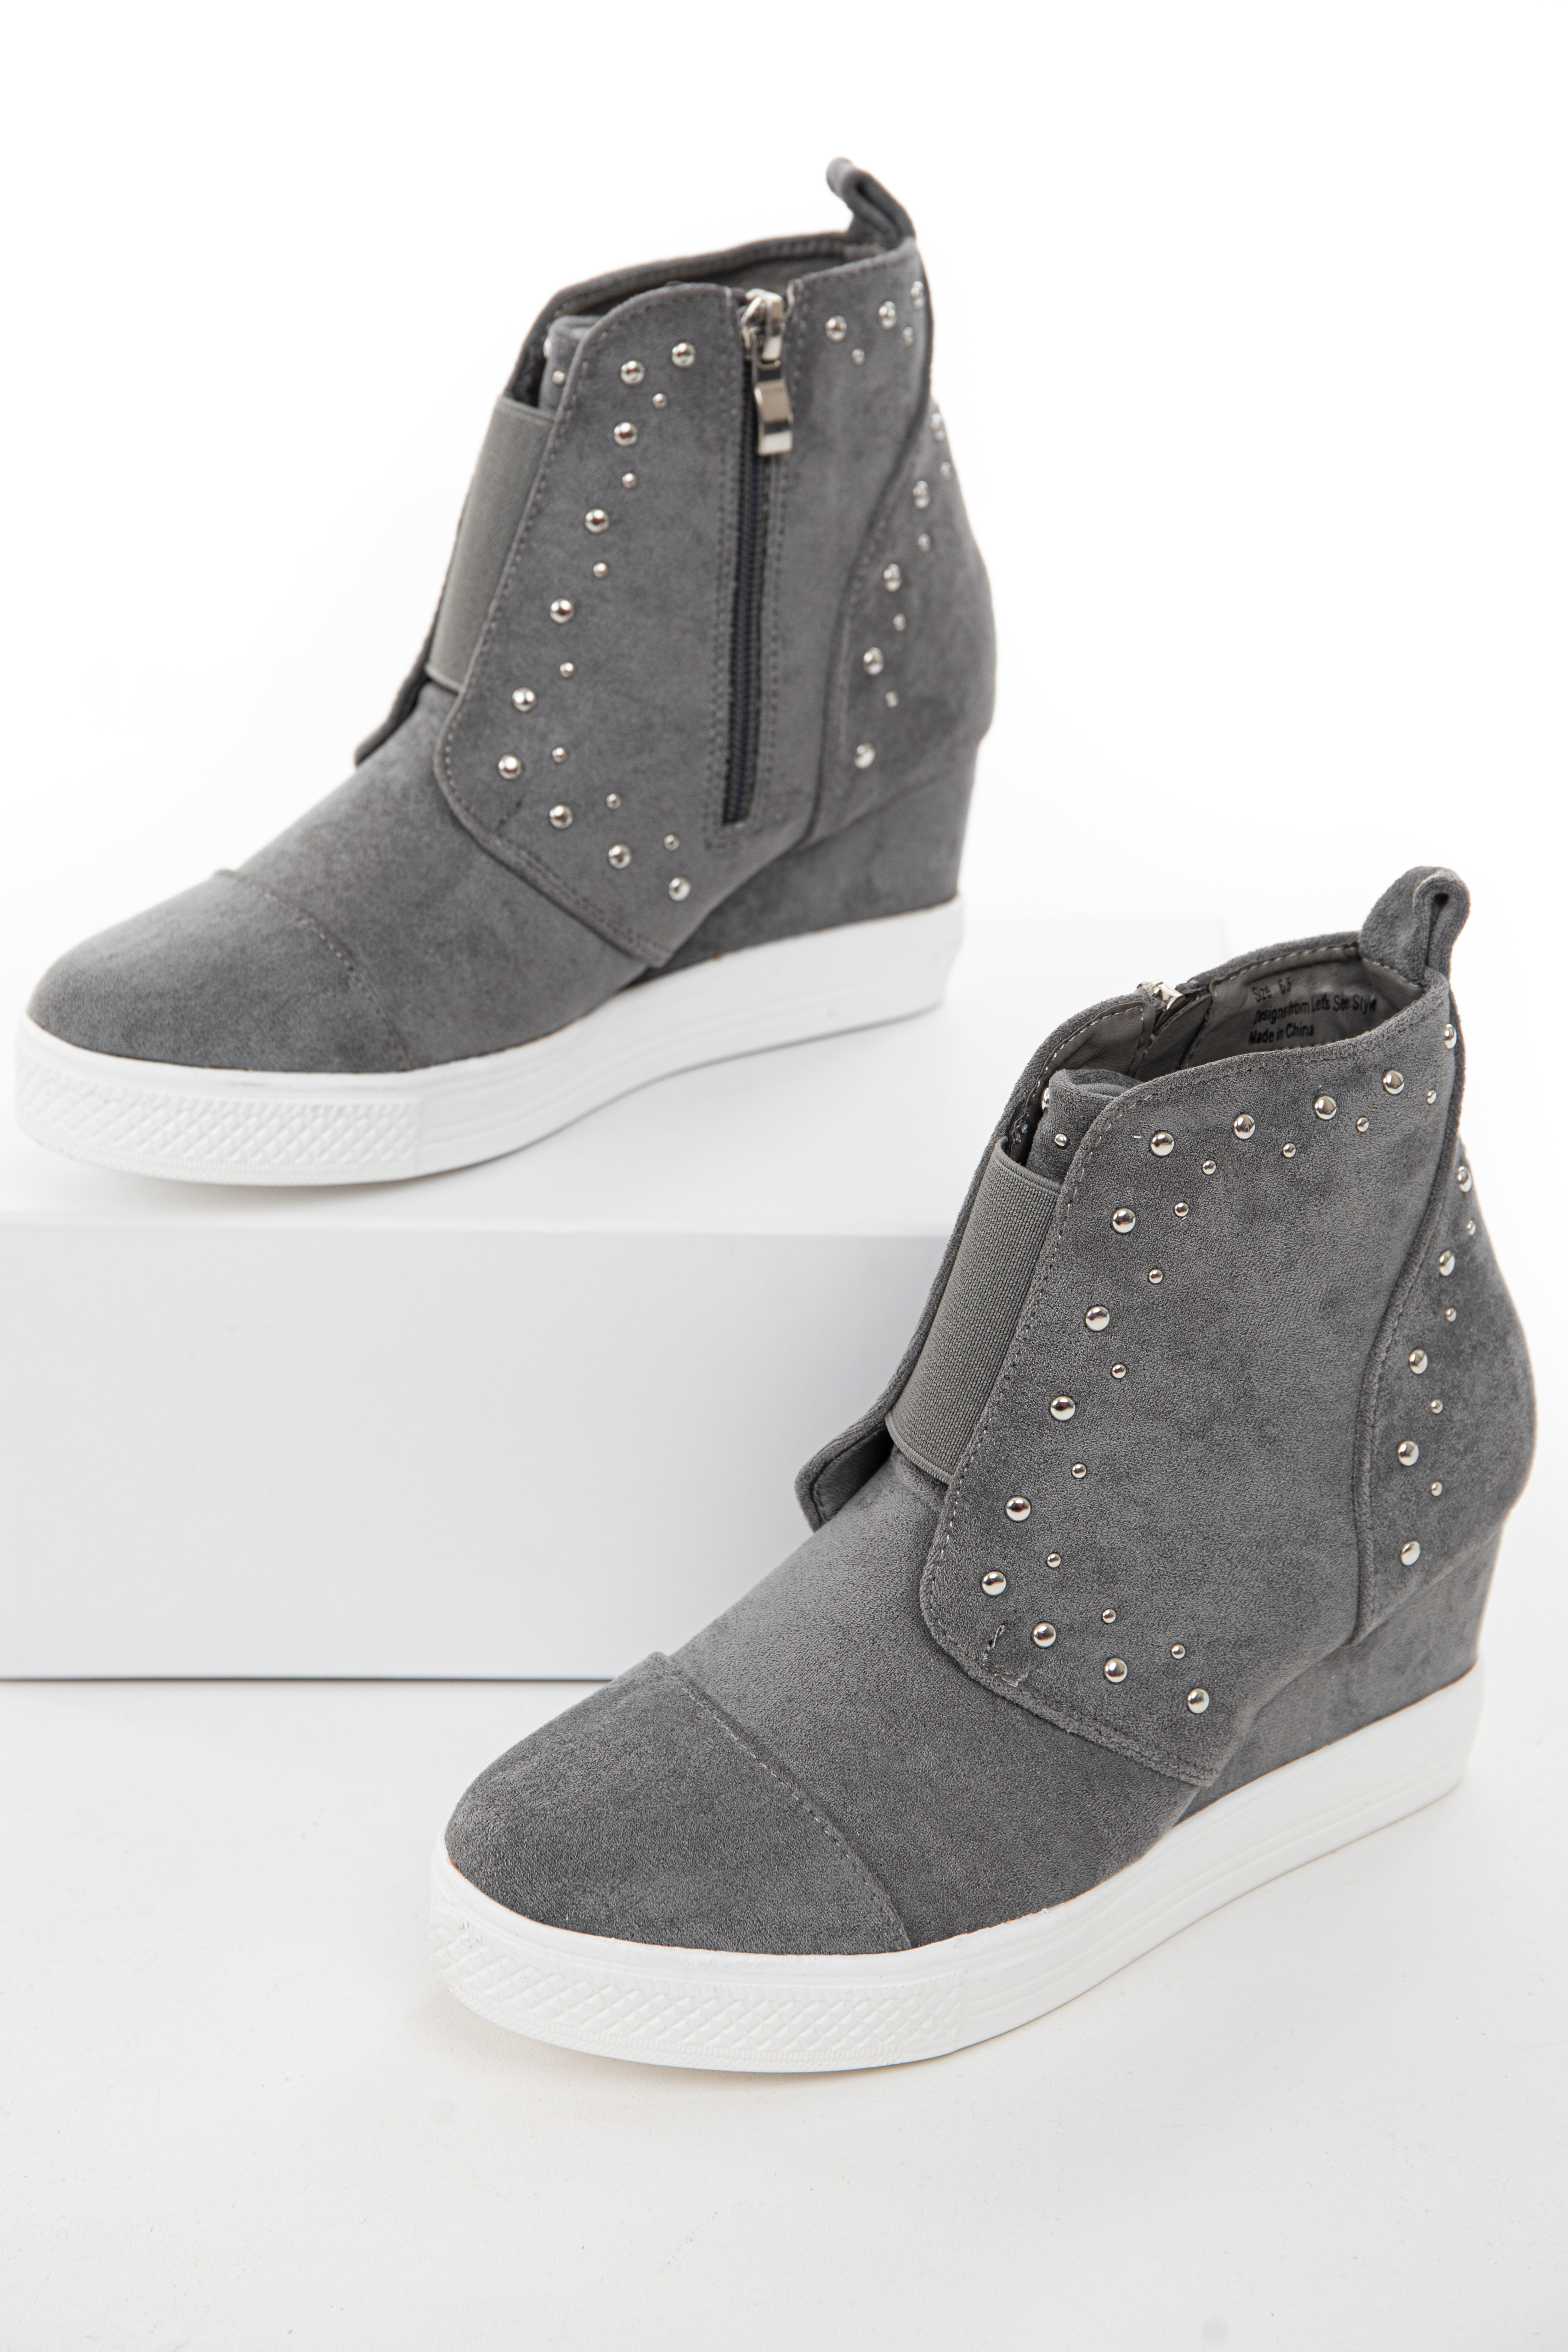 Ash Grey Faux Suede Wedge Sneakers with Silver Stud Details